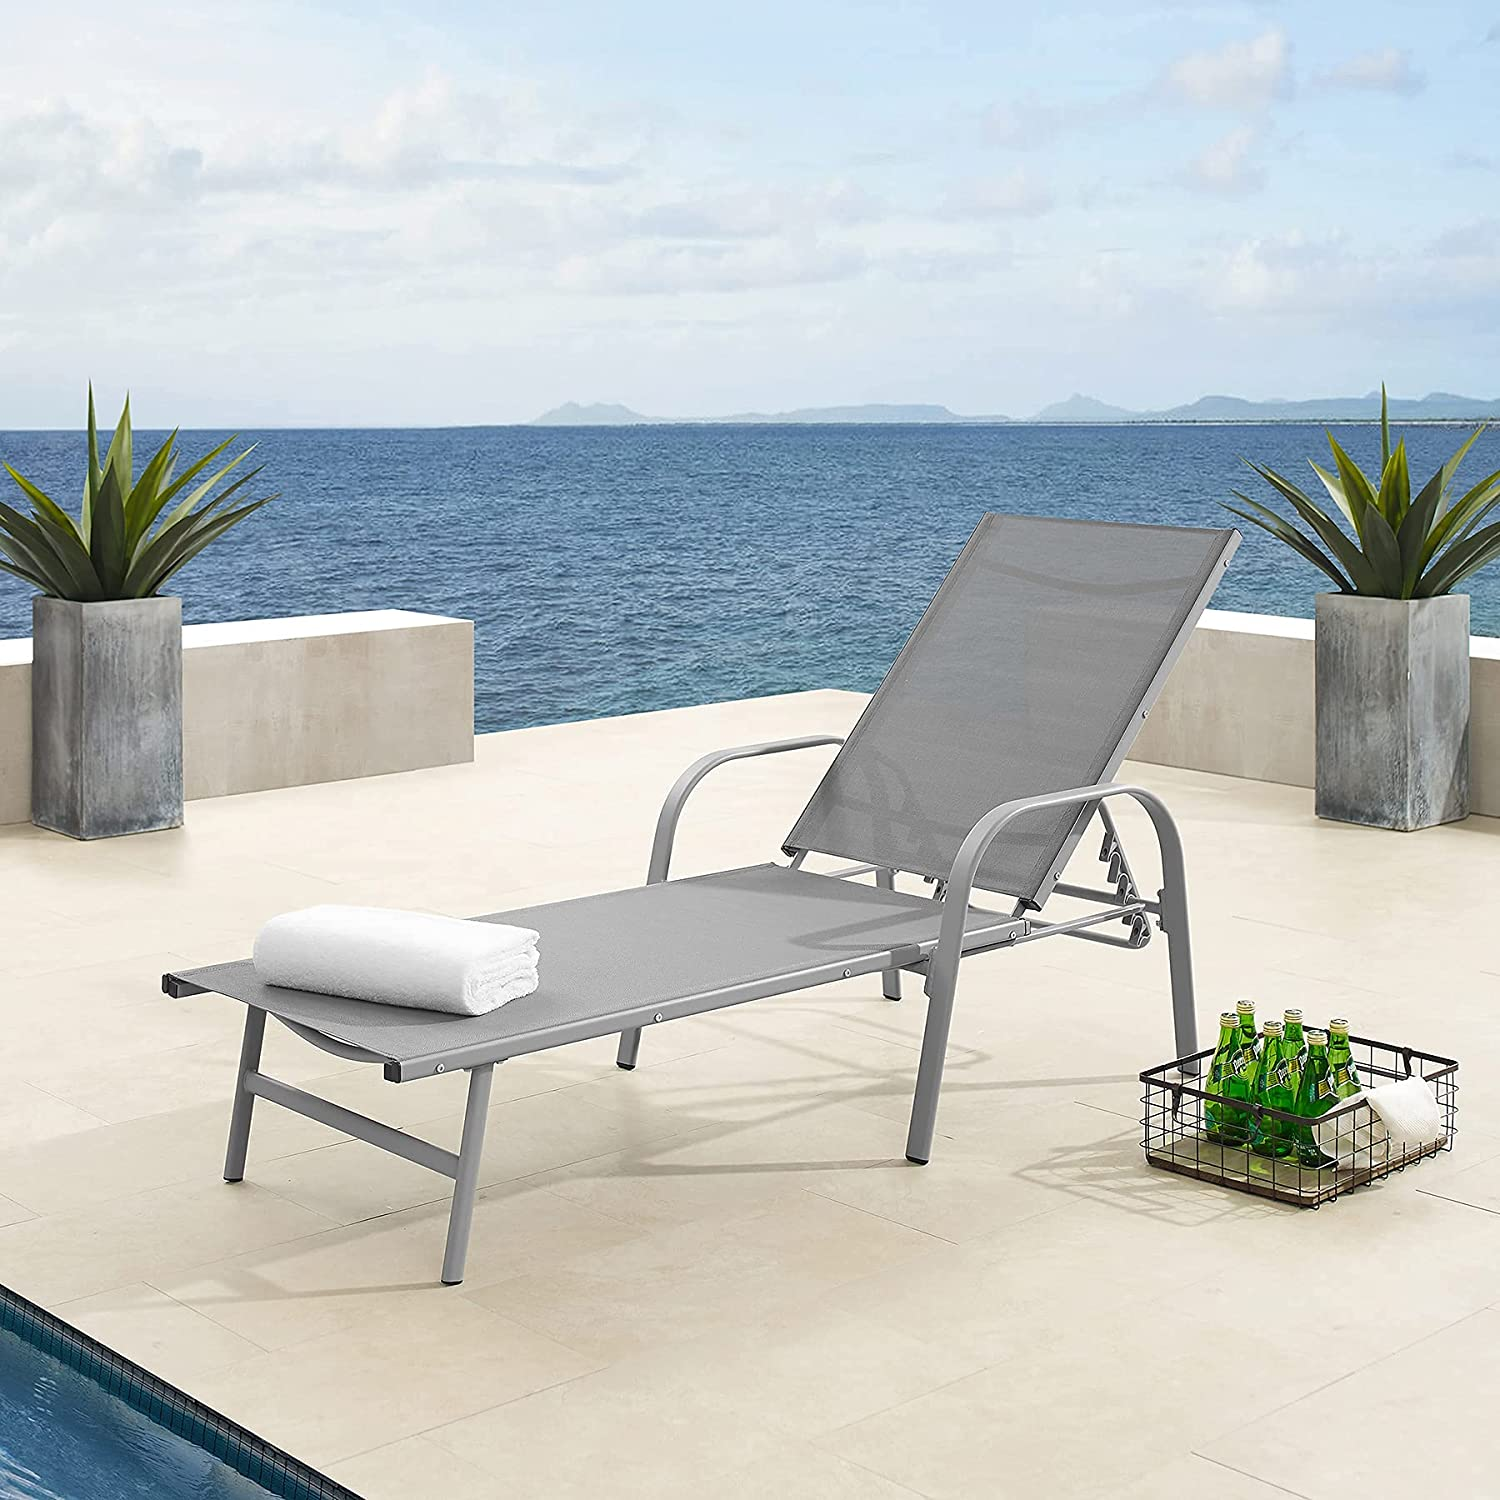 Breathable Chaise Max 82% OFF Lounge Award Chairs for Modern Ou Outside Textilene